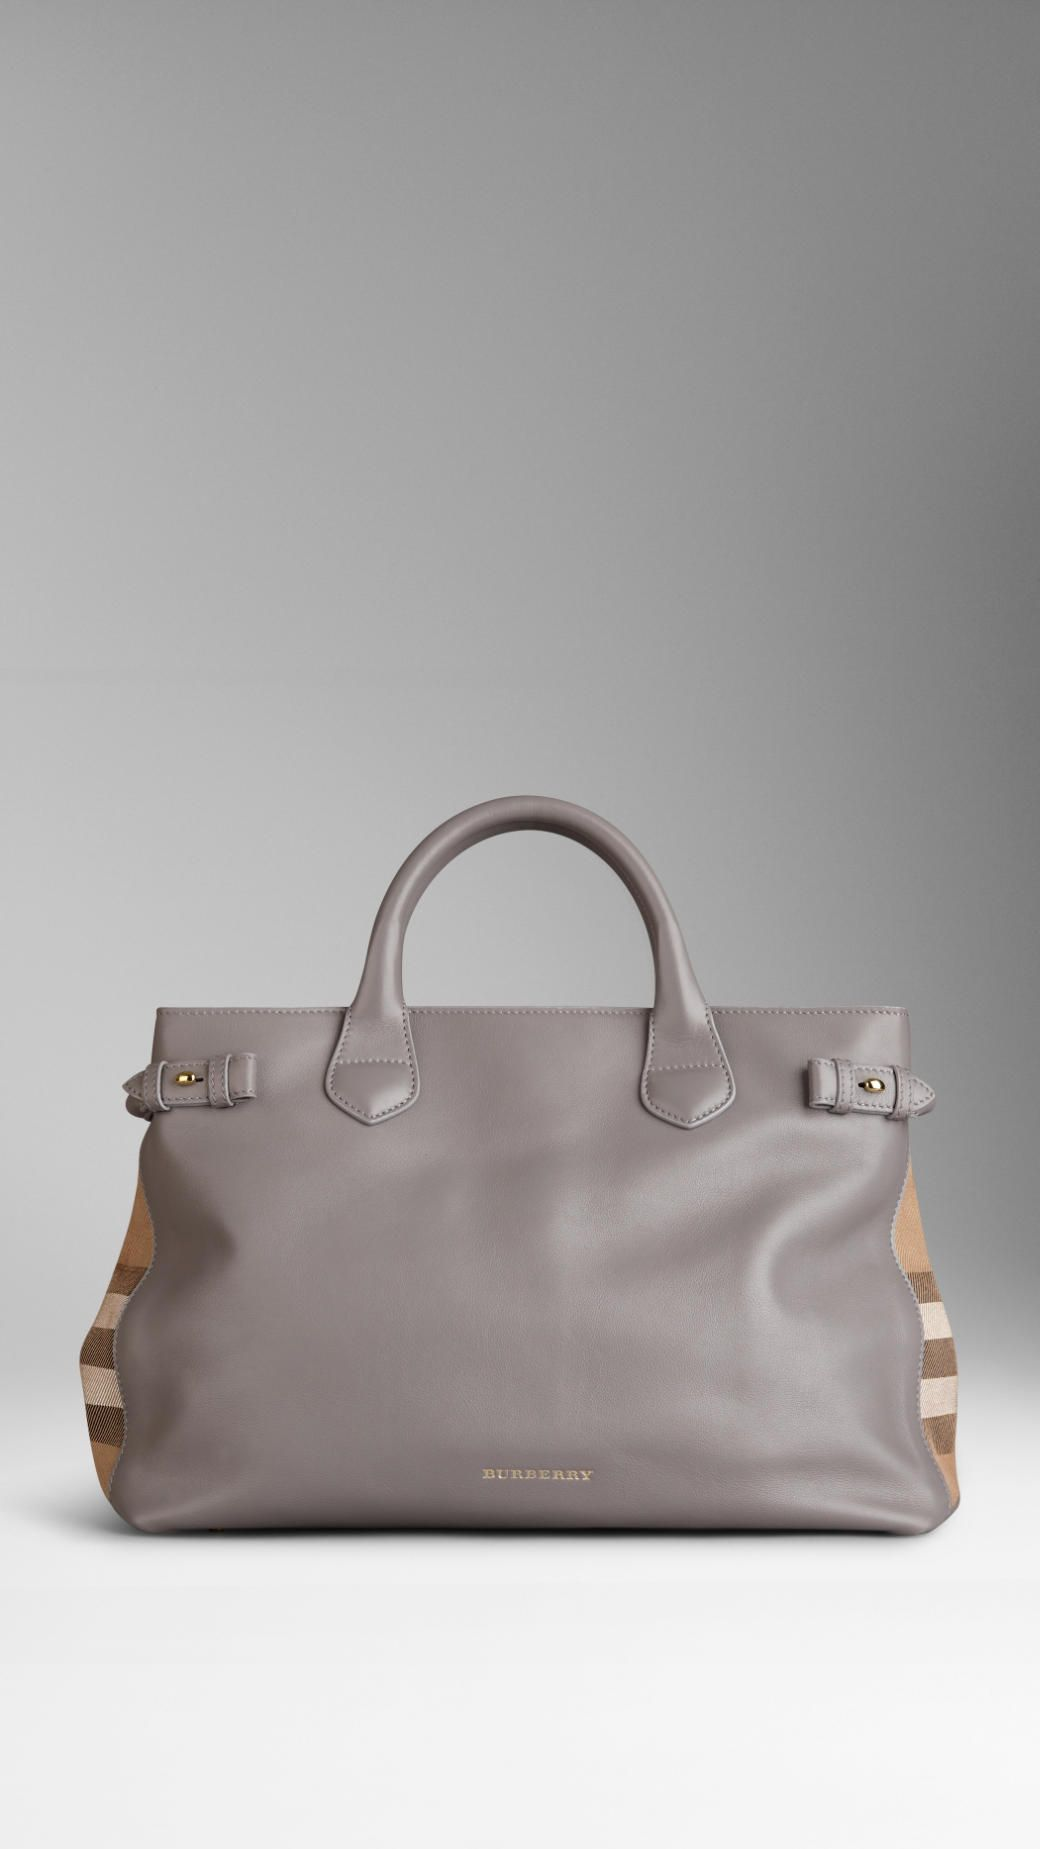 Burberry Medium House Check Detail Leather Tote Bag 387c9f74469f0